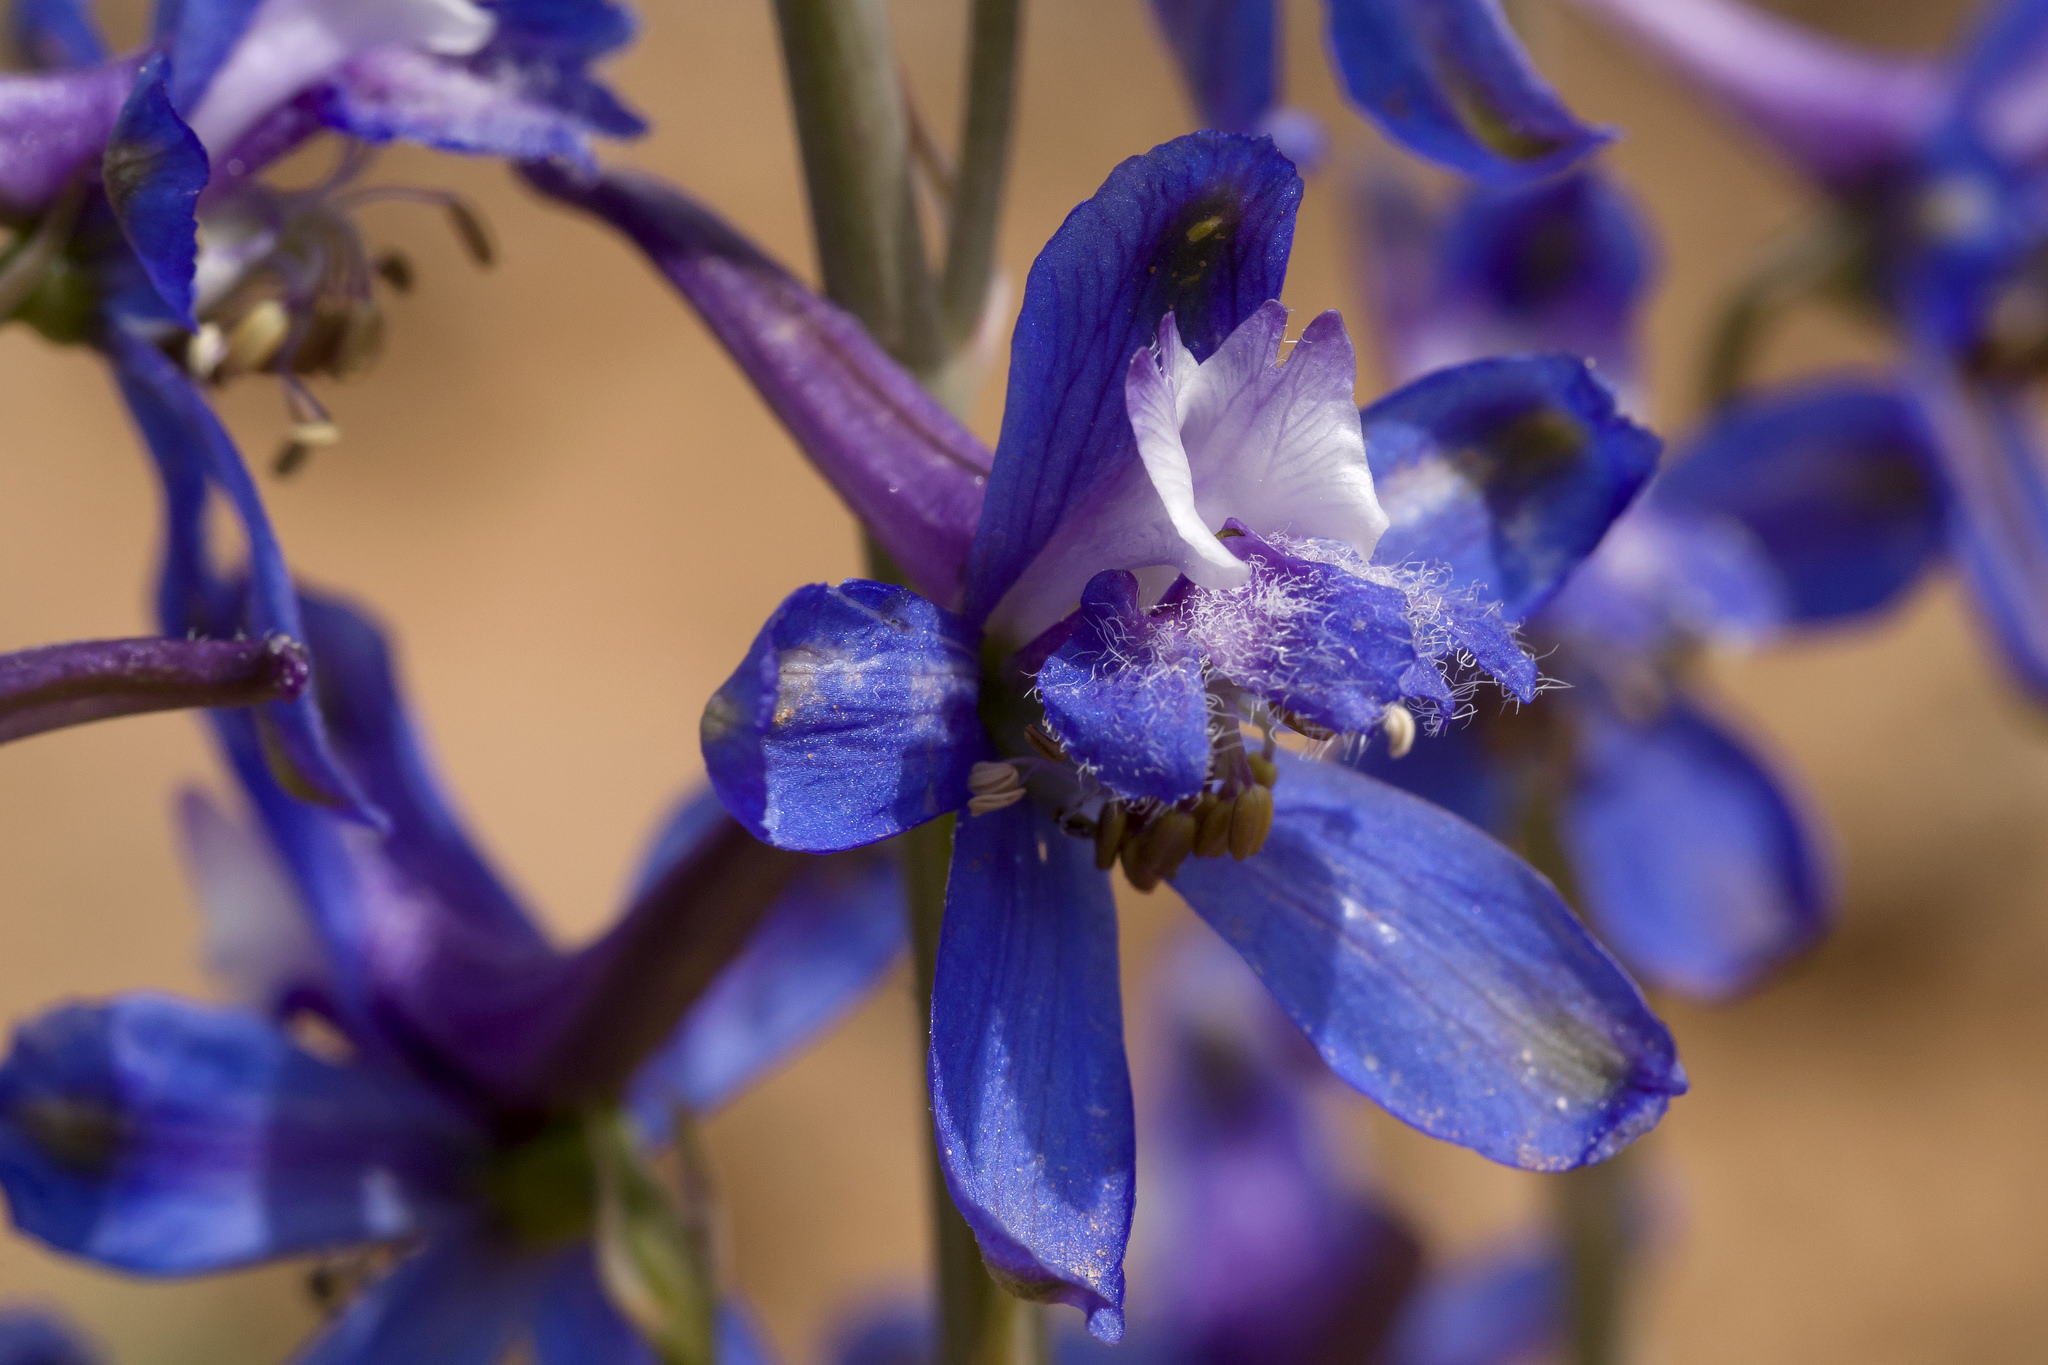 Close-up of Delphinium scaposum showing complex floral parts and fuzz on one of the petals